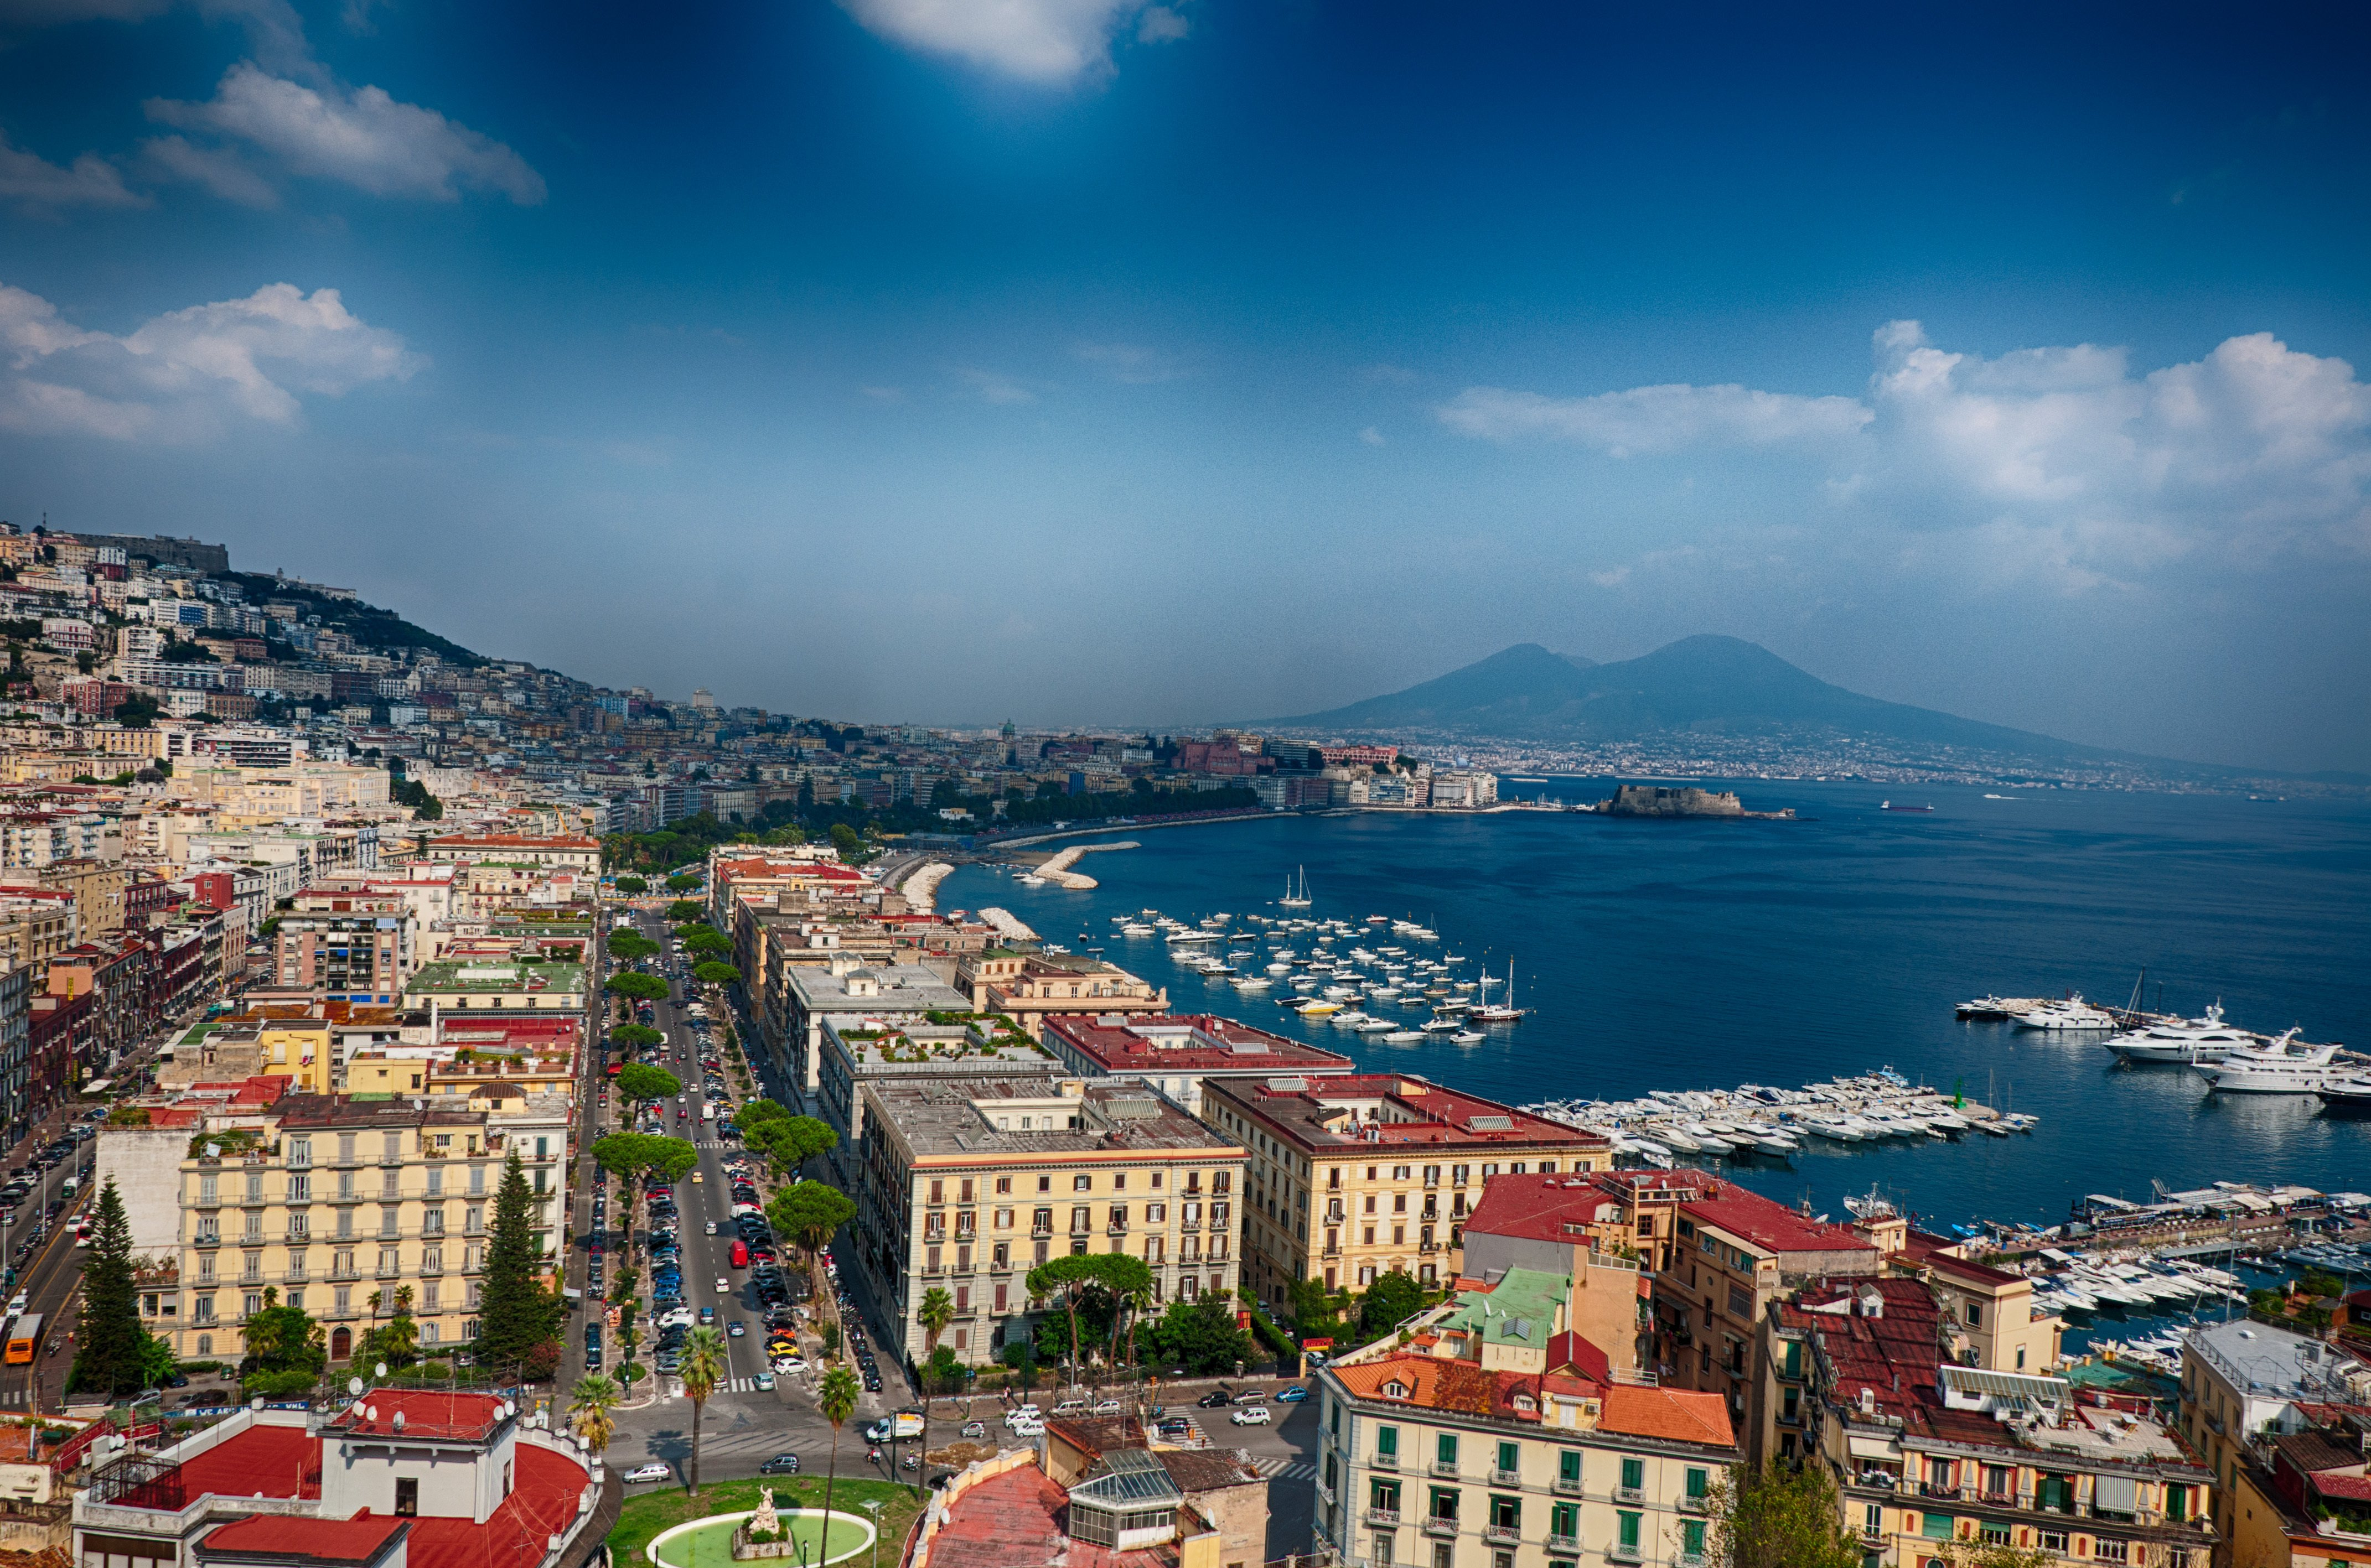 Naples Italy  city images : NAPLES ITALY city cities building buildings italian Napoli wallpaper ...